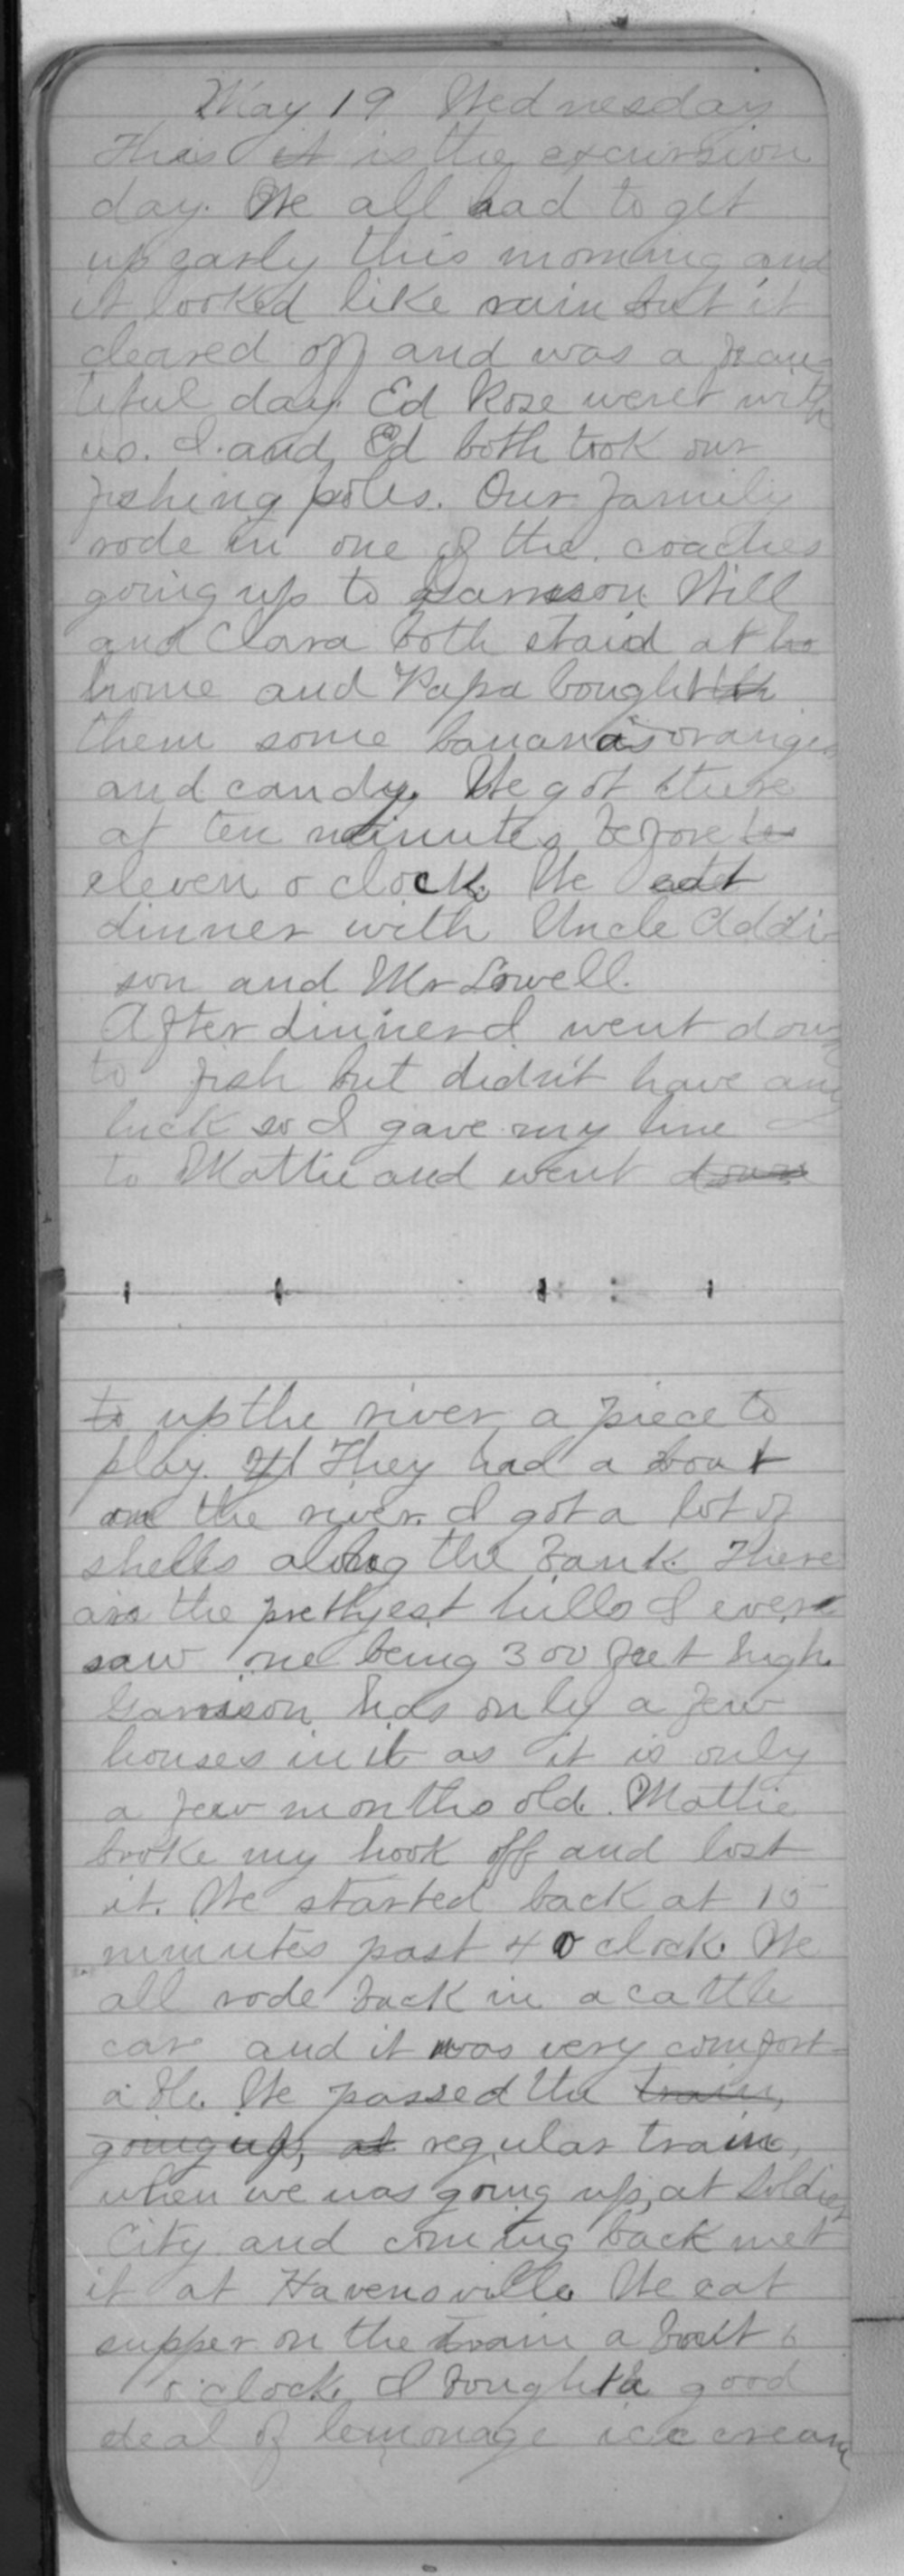 "Edward S. (""Ned"") Beck diaries - May 19, 1880"